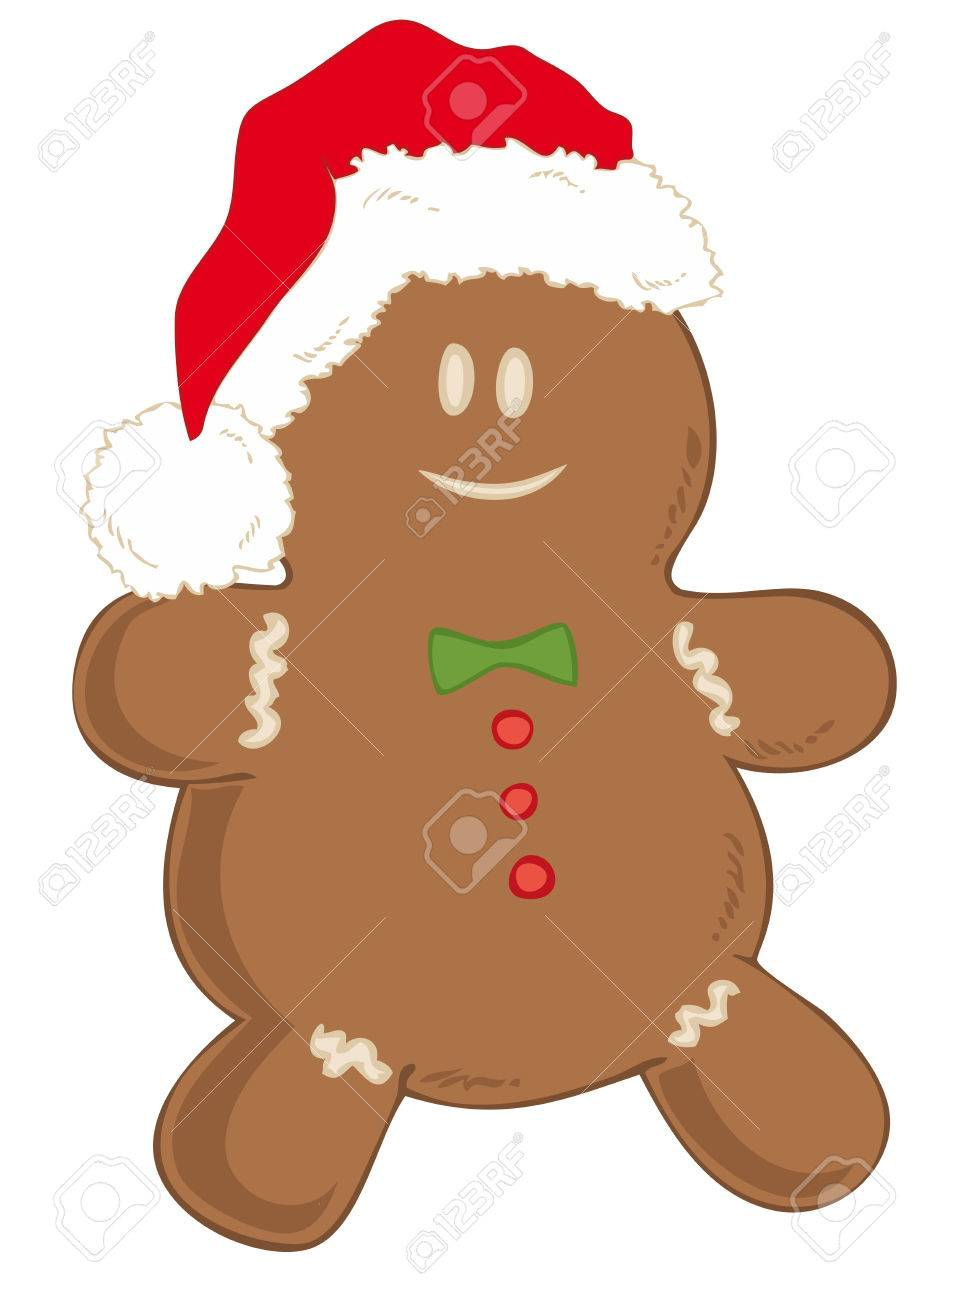 Gingerbread man with Santa Claus Hat. Stock Vector - 8415777